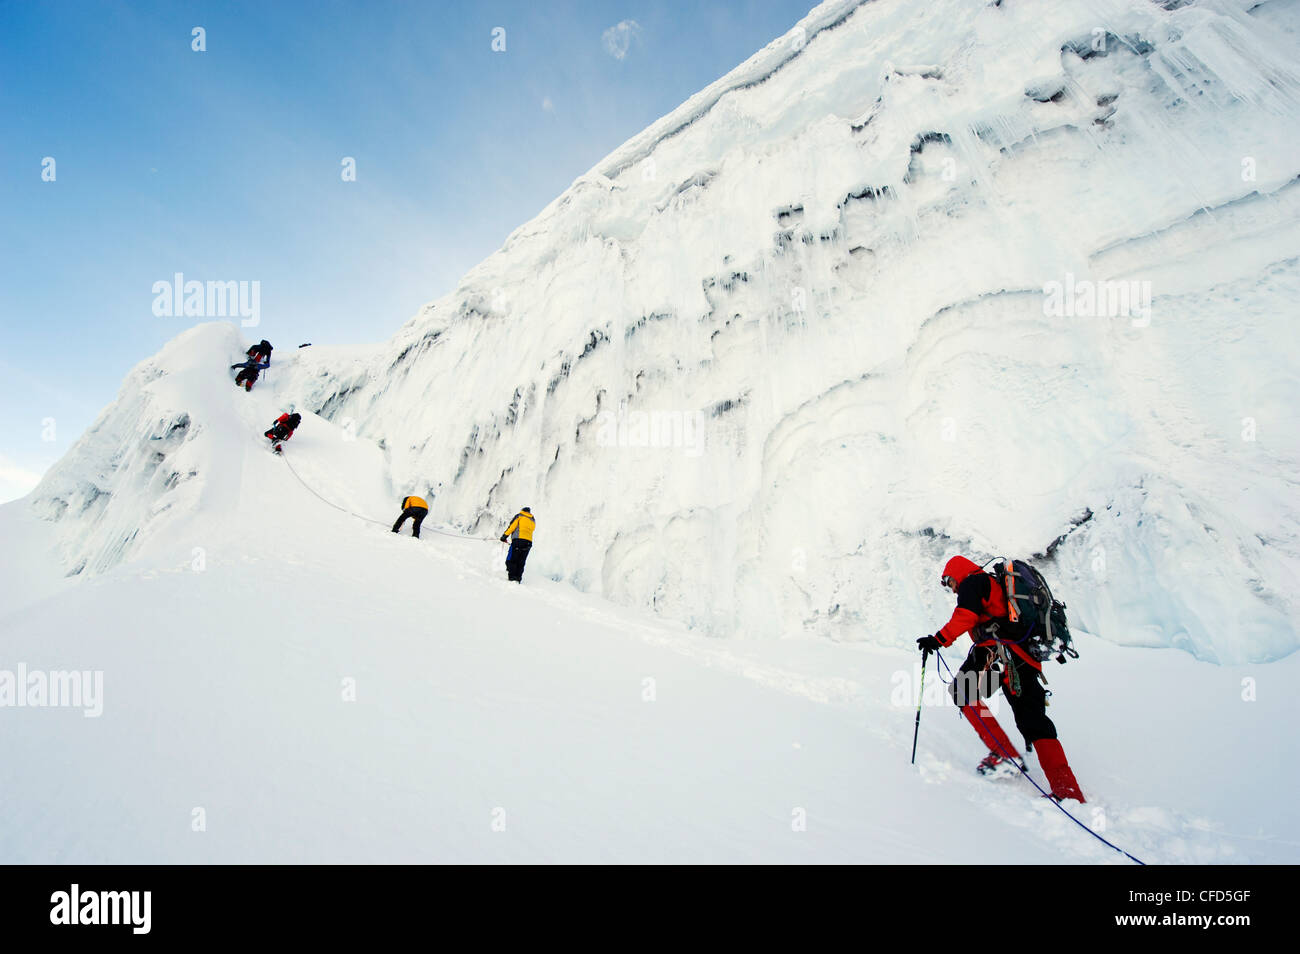 limbers on the glacier of Volcan Cotopaxi, at 5897m the highest active volcano in the world, Ecuador, South America - Stock Image